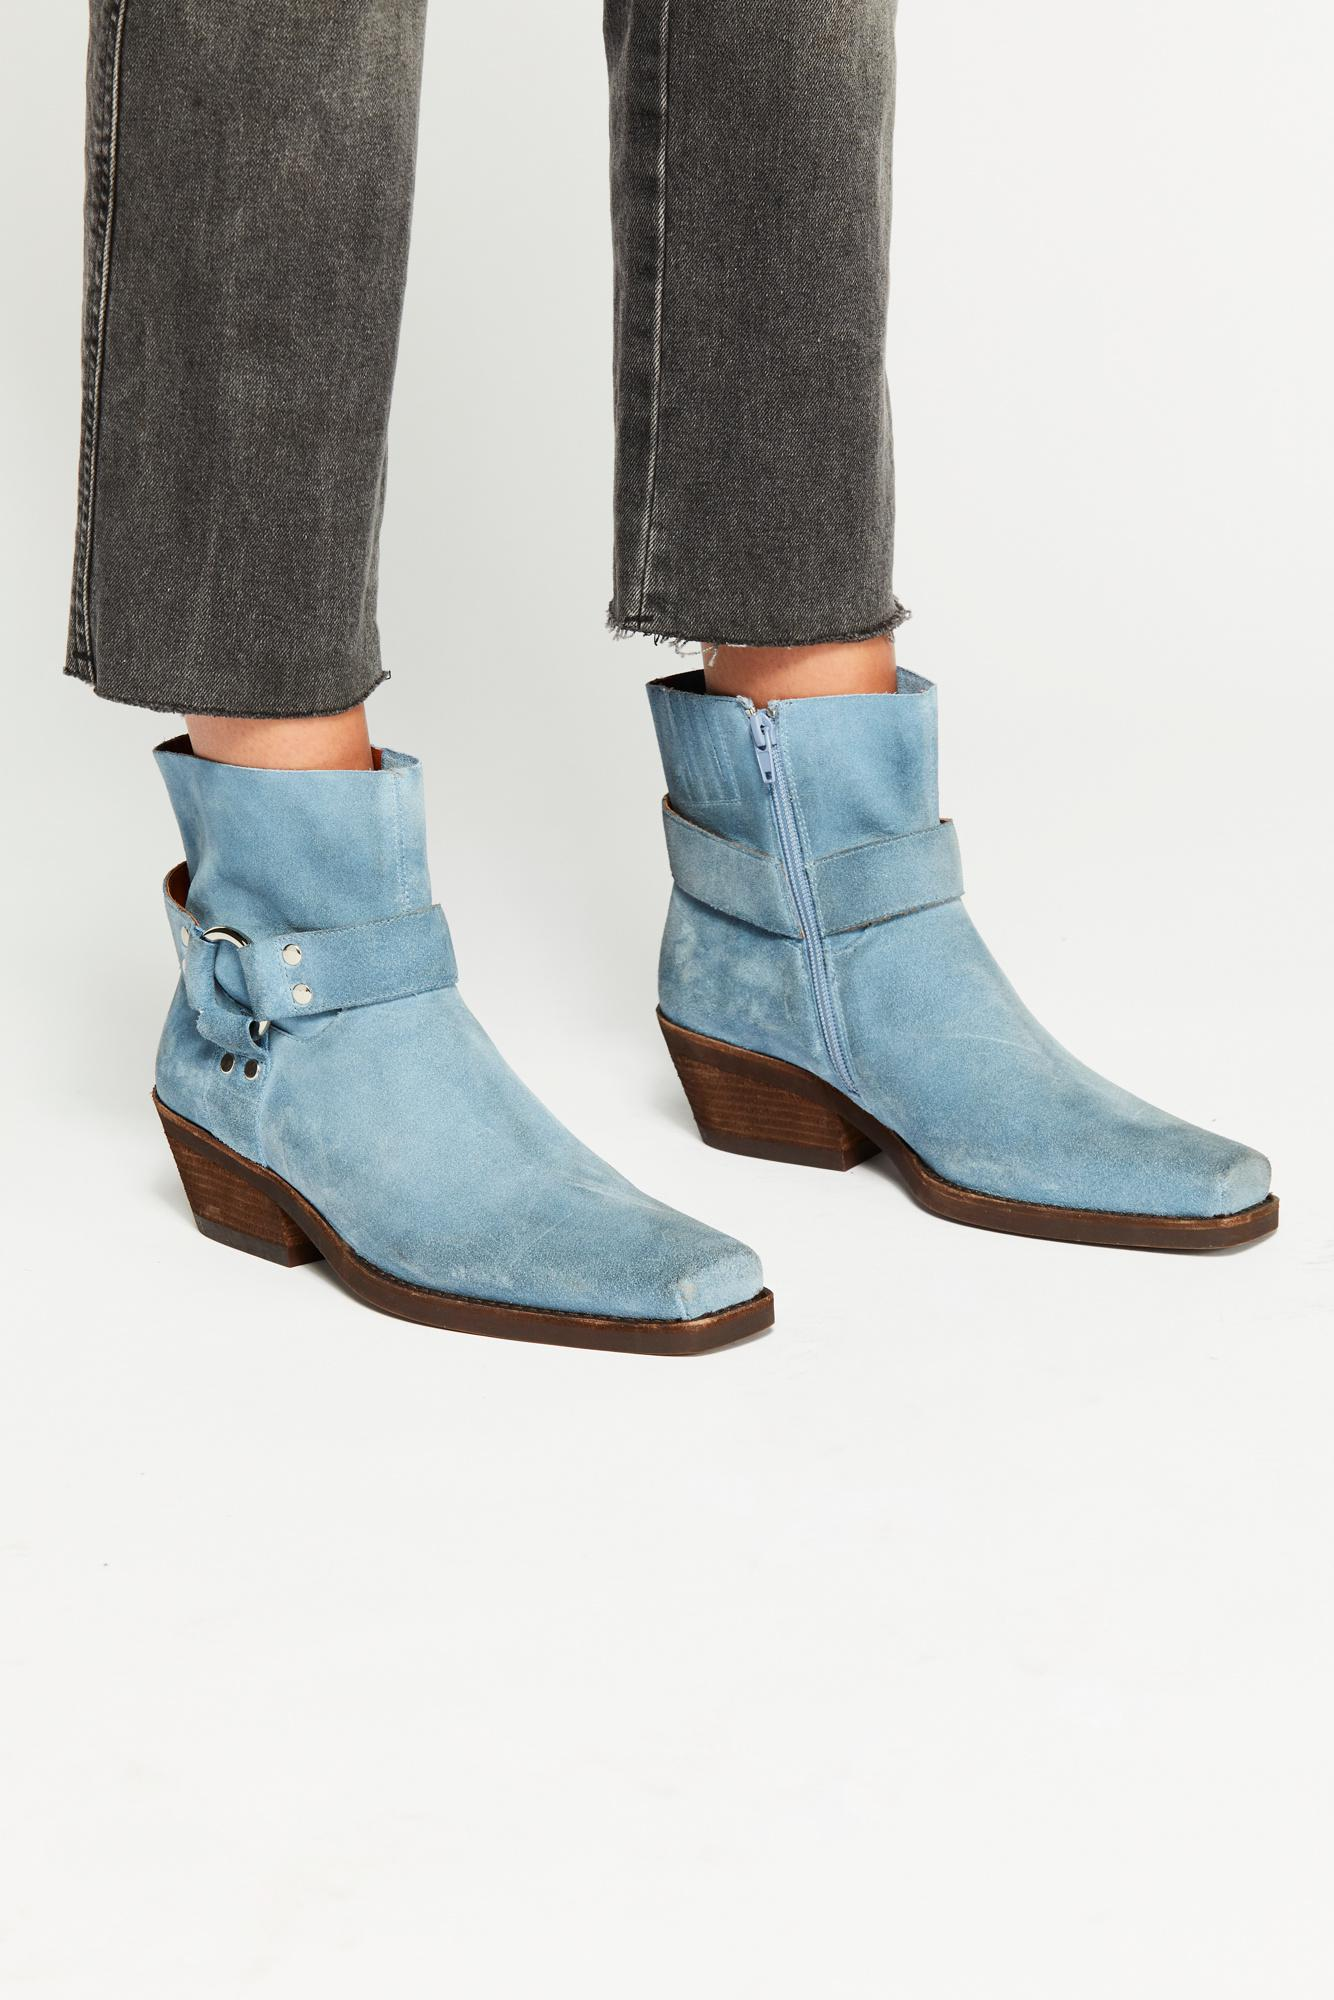 00f618164af Free People Blue Fairfax Western Boot By Jeffrey Campbell